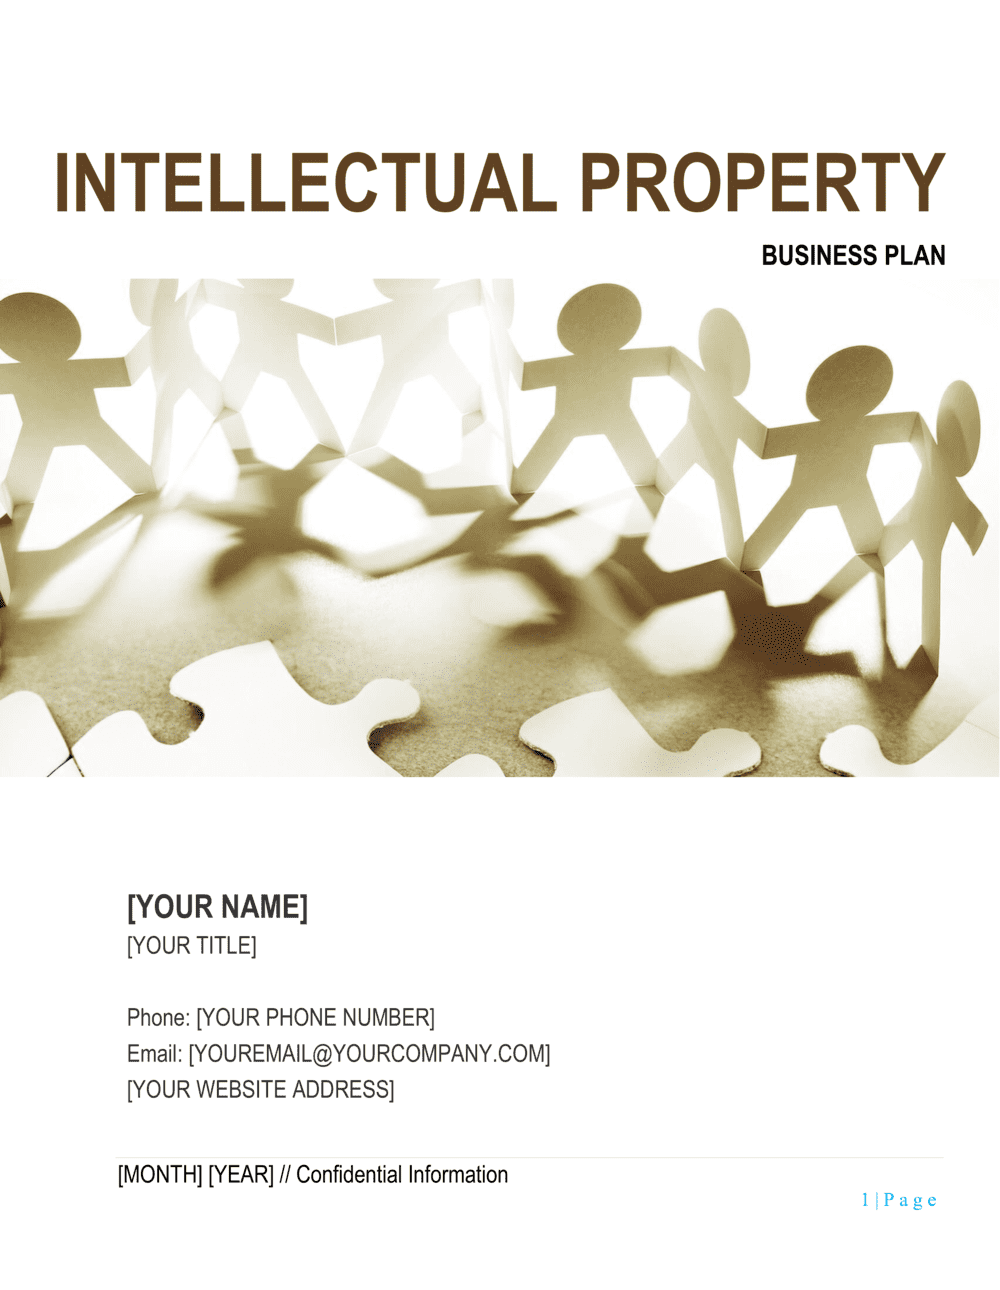 Business-in-a-Box's Intellectual Property Business Plan Template